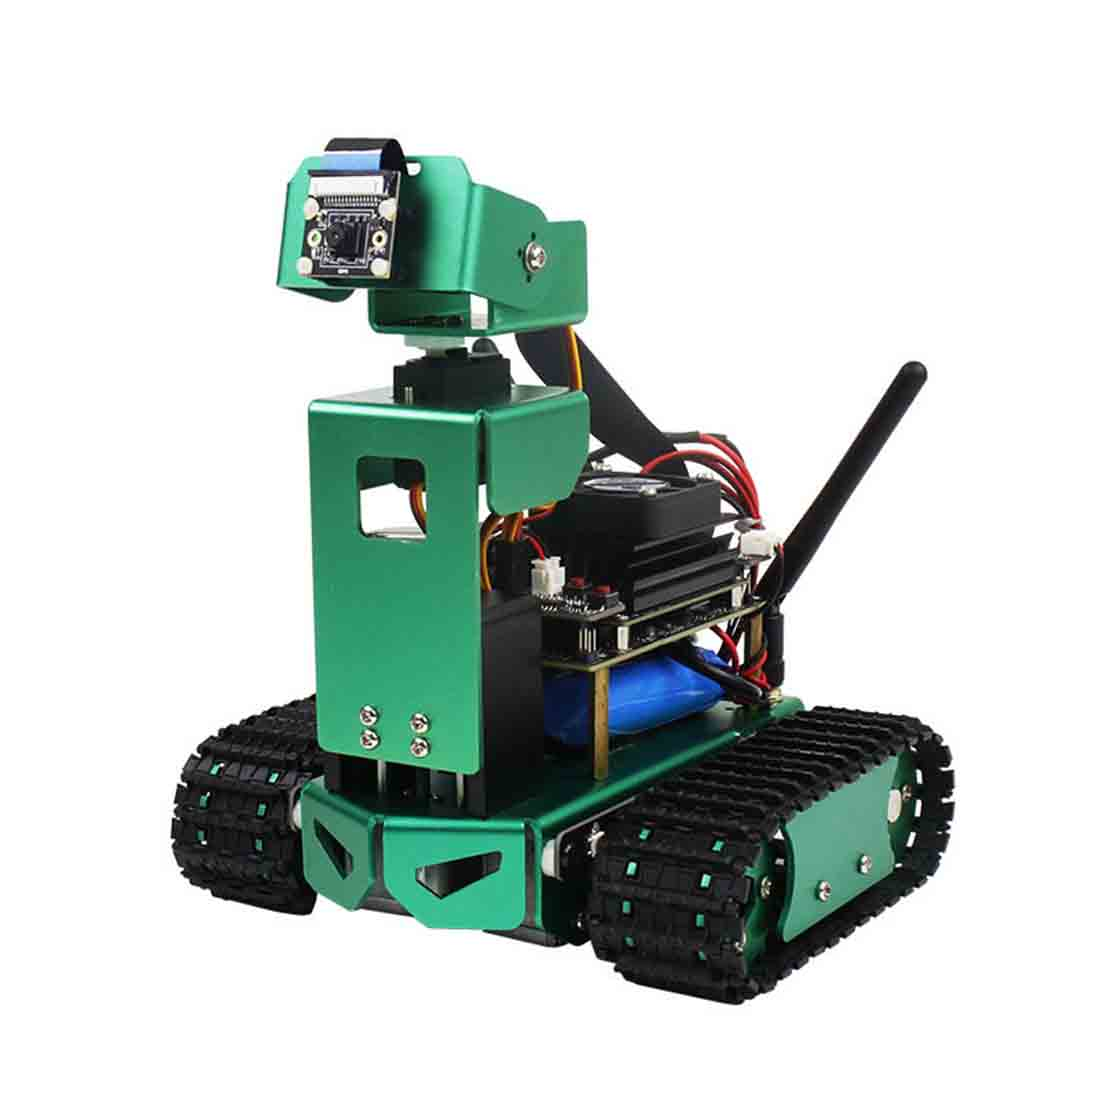 Artificial Intelligence Car DIY 3DOF Robot Car Kit With/Without Development Board For Jetson Nano (Adjustable Height) For Child